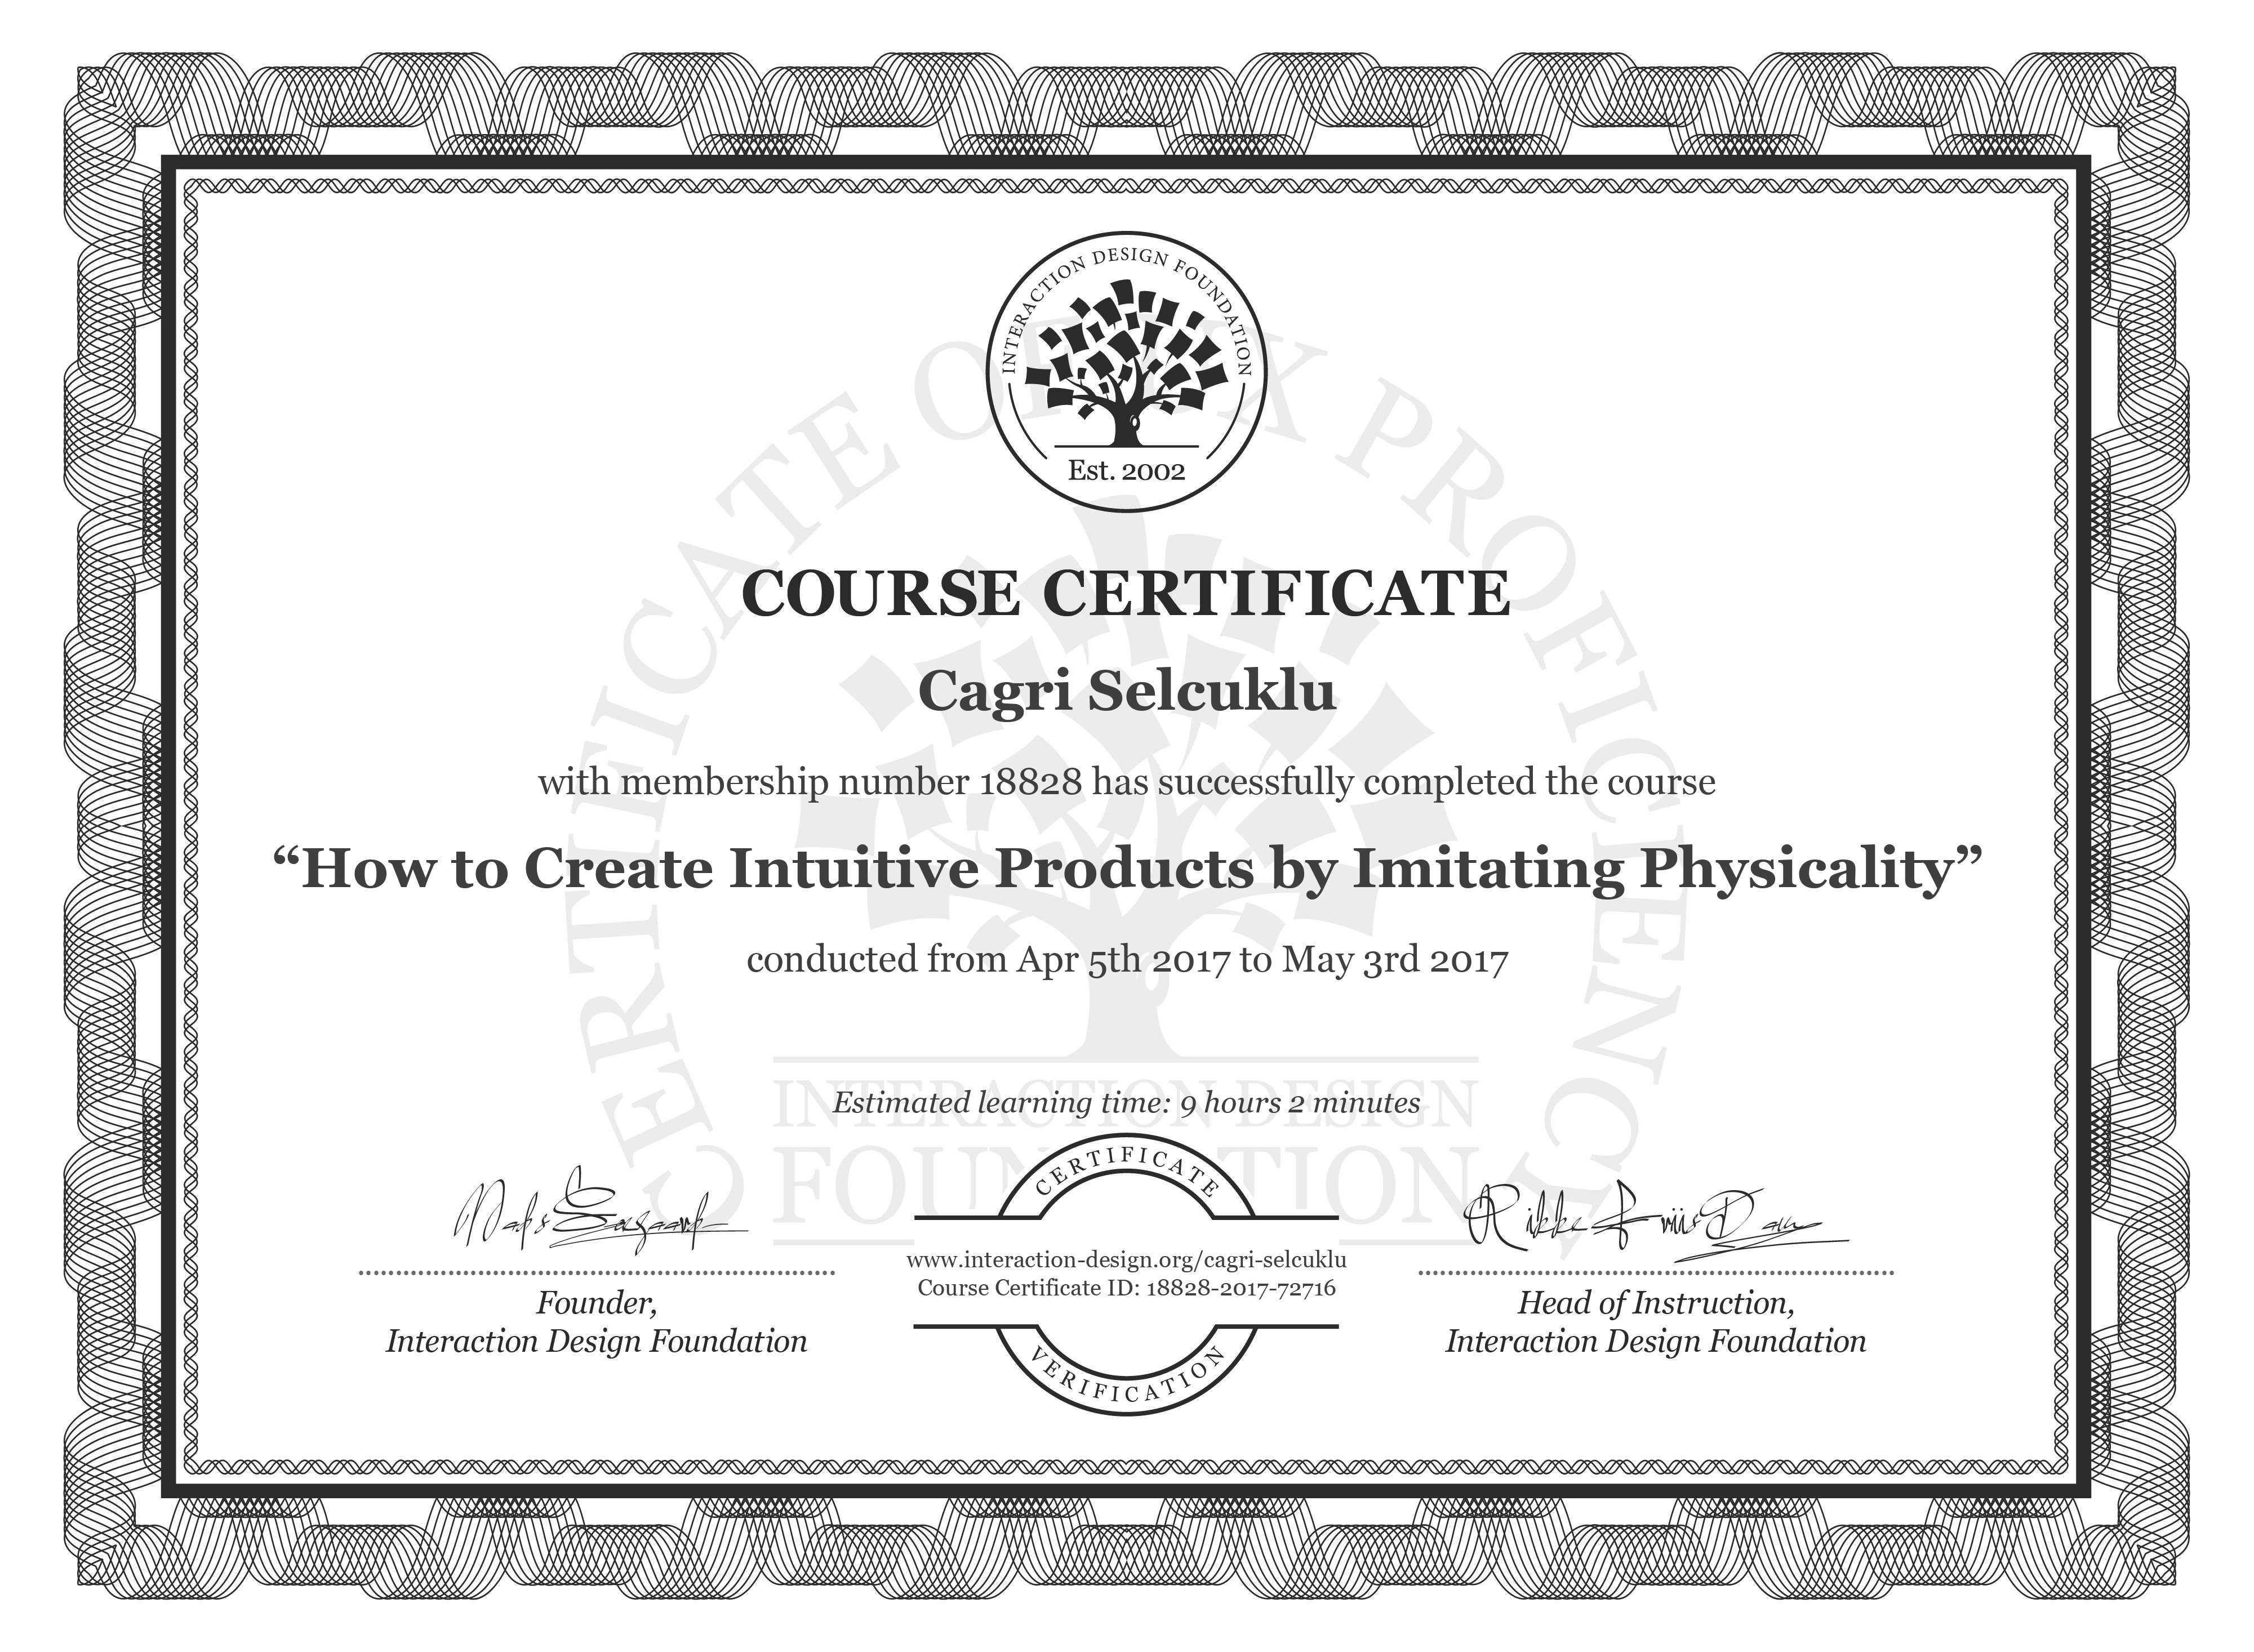 Cagri Selcuklu: Course Certificate - How to Create Intuitive Products by Imitating Physicality